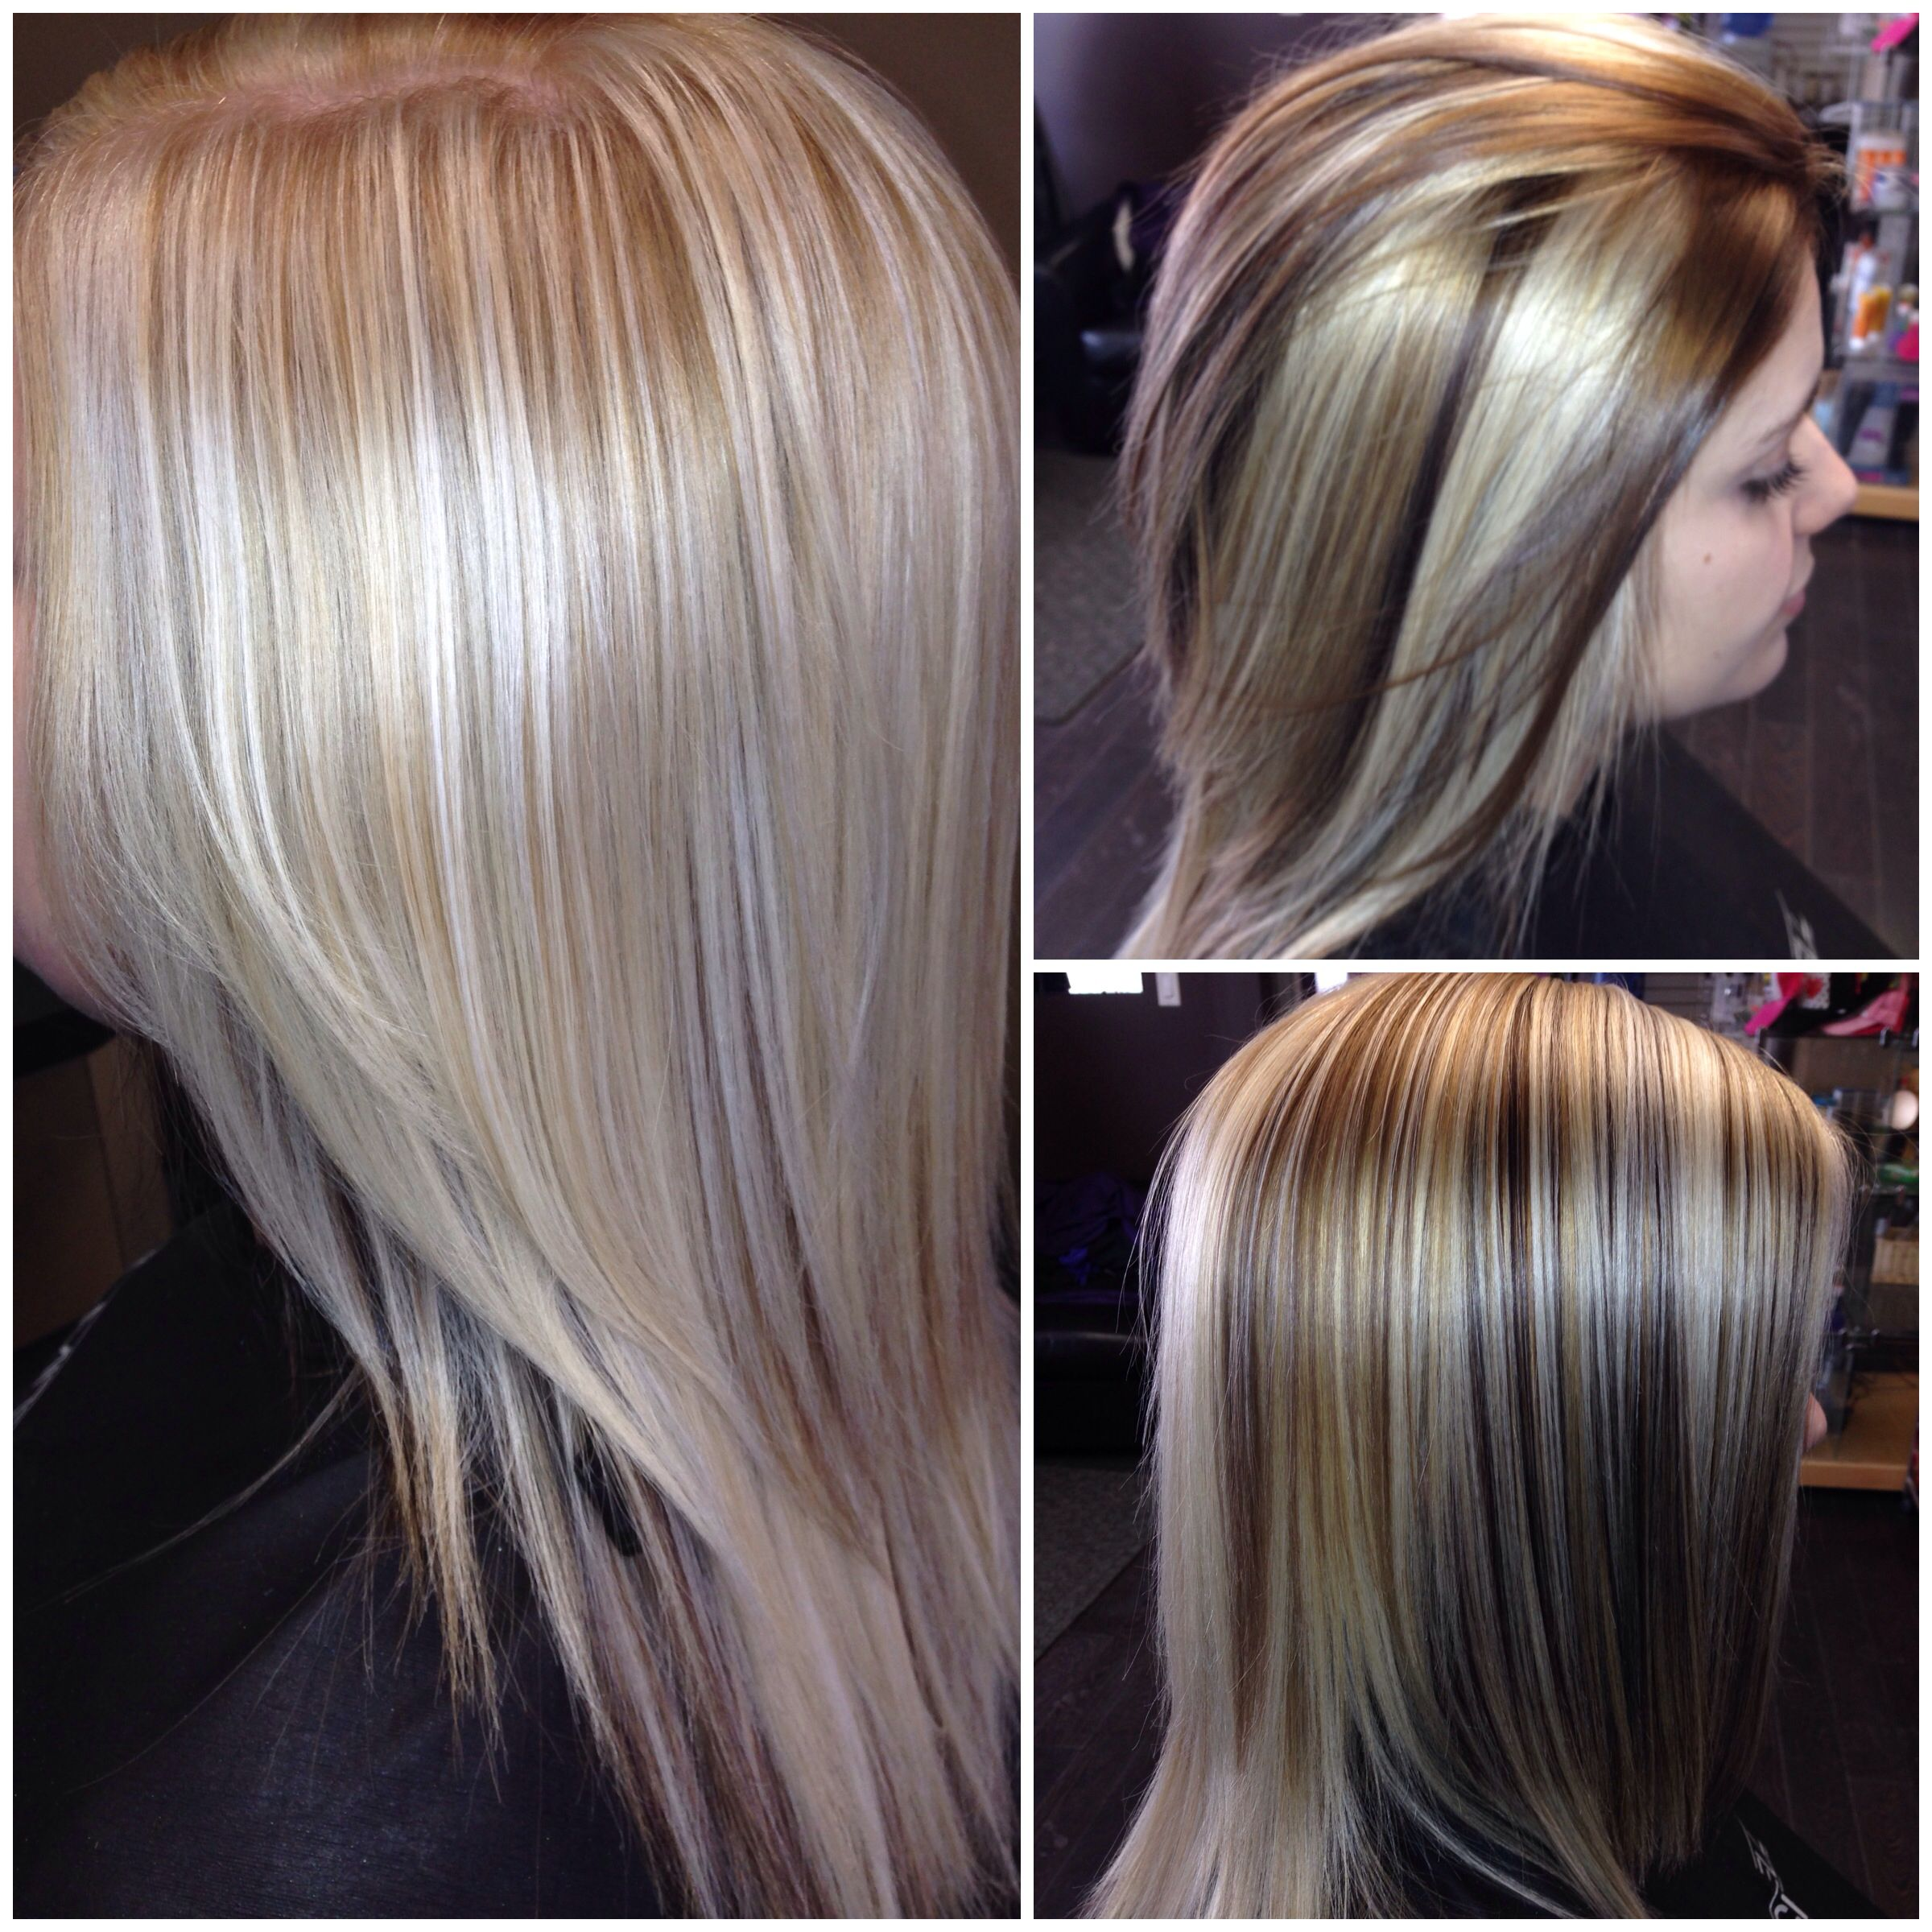 Same head, different looks! Slices of darker shades add depth and ...